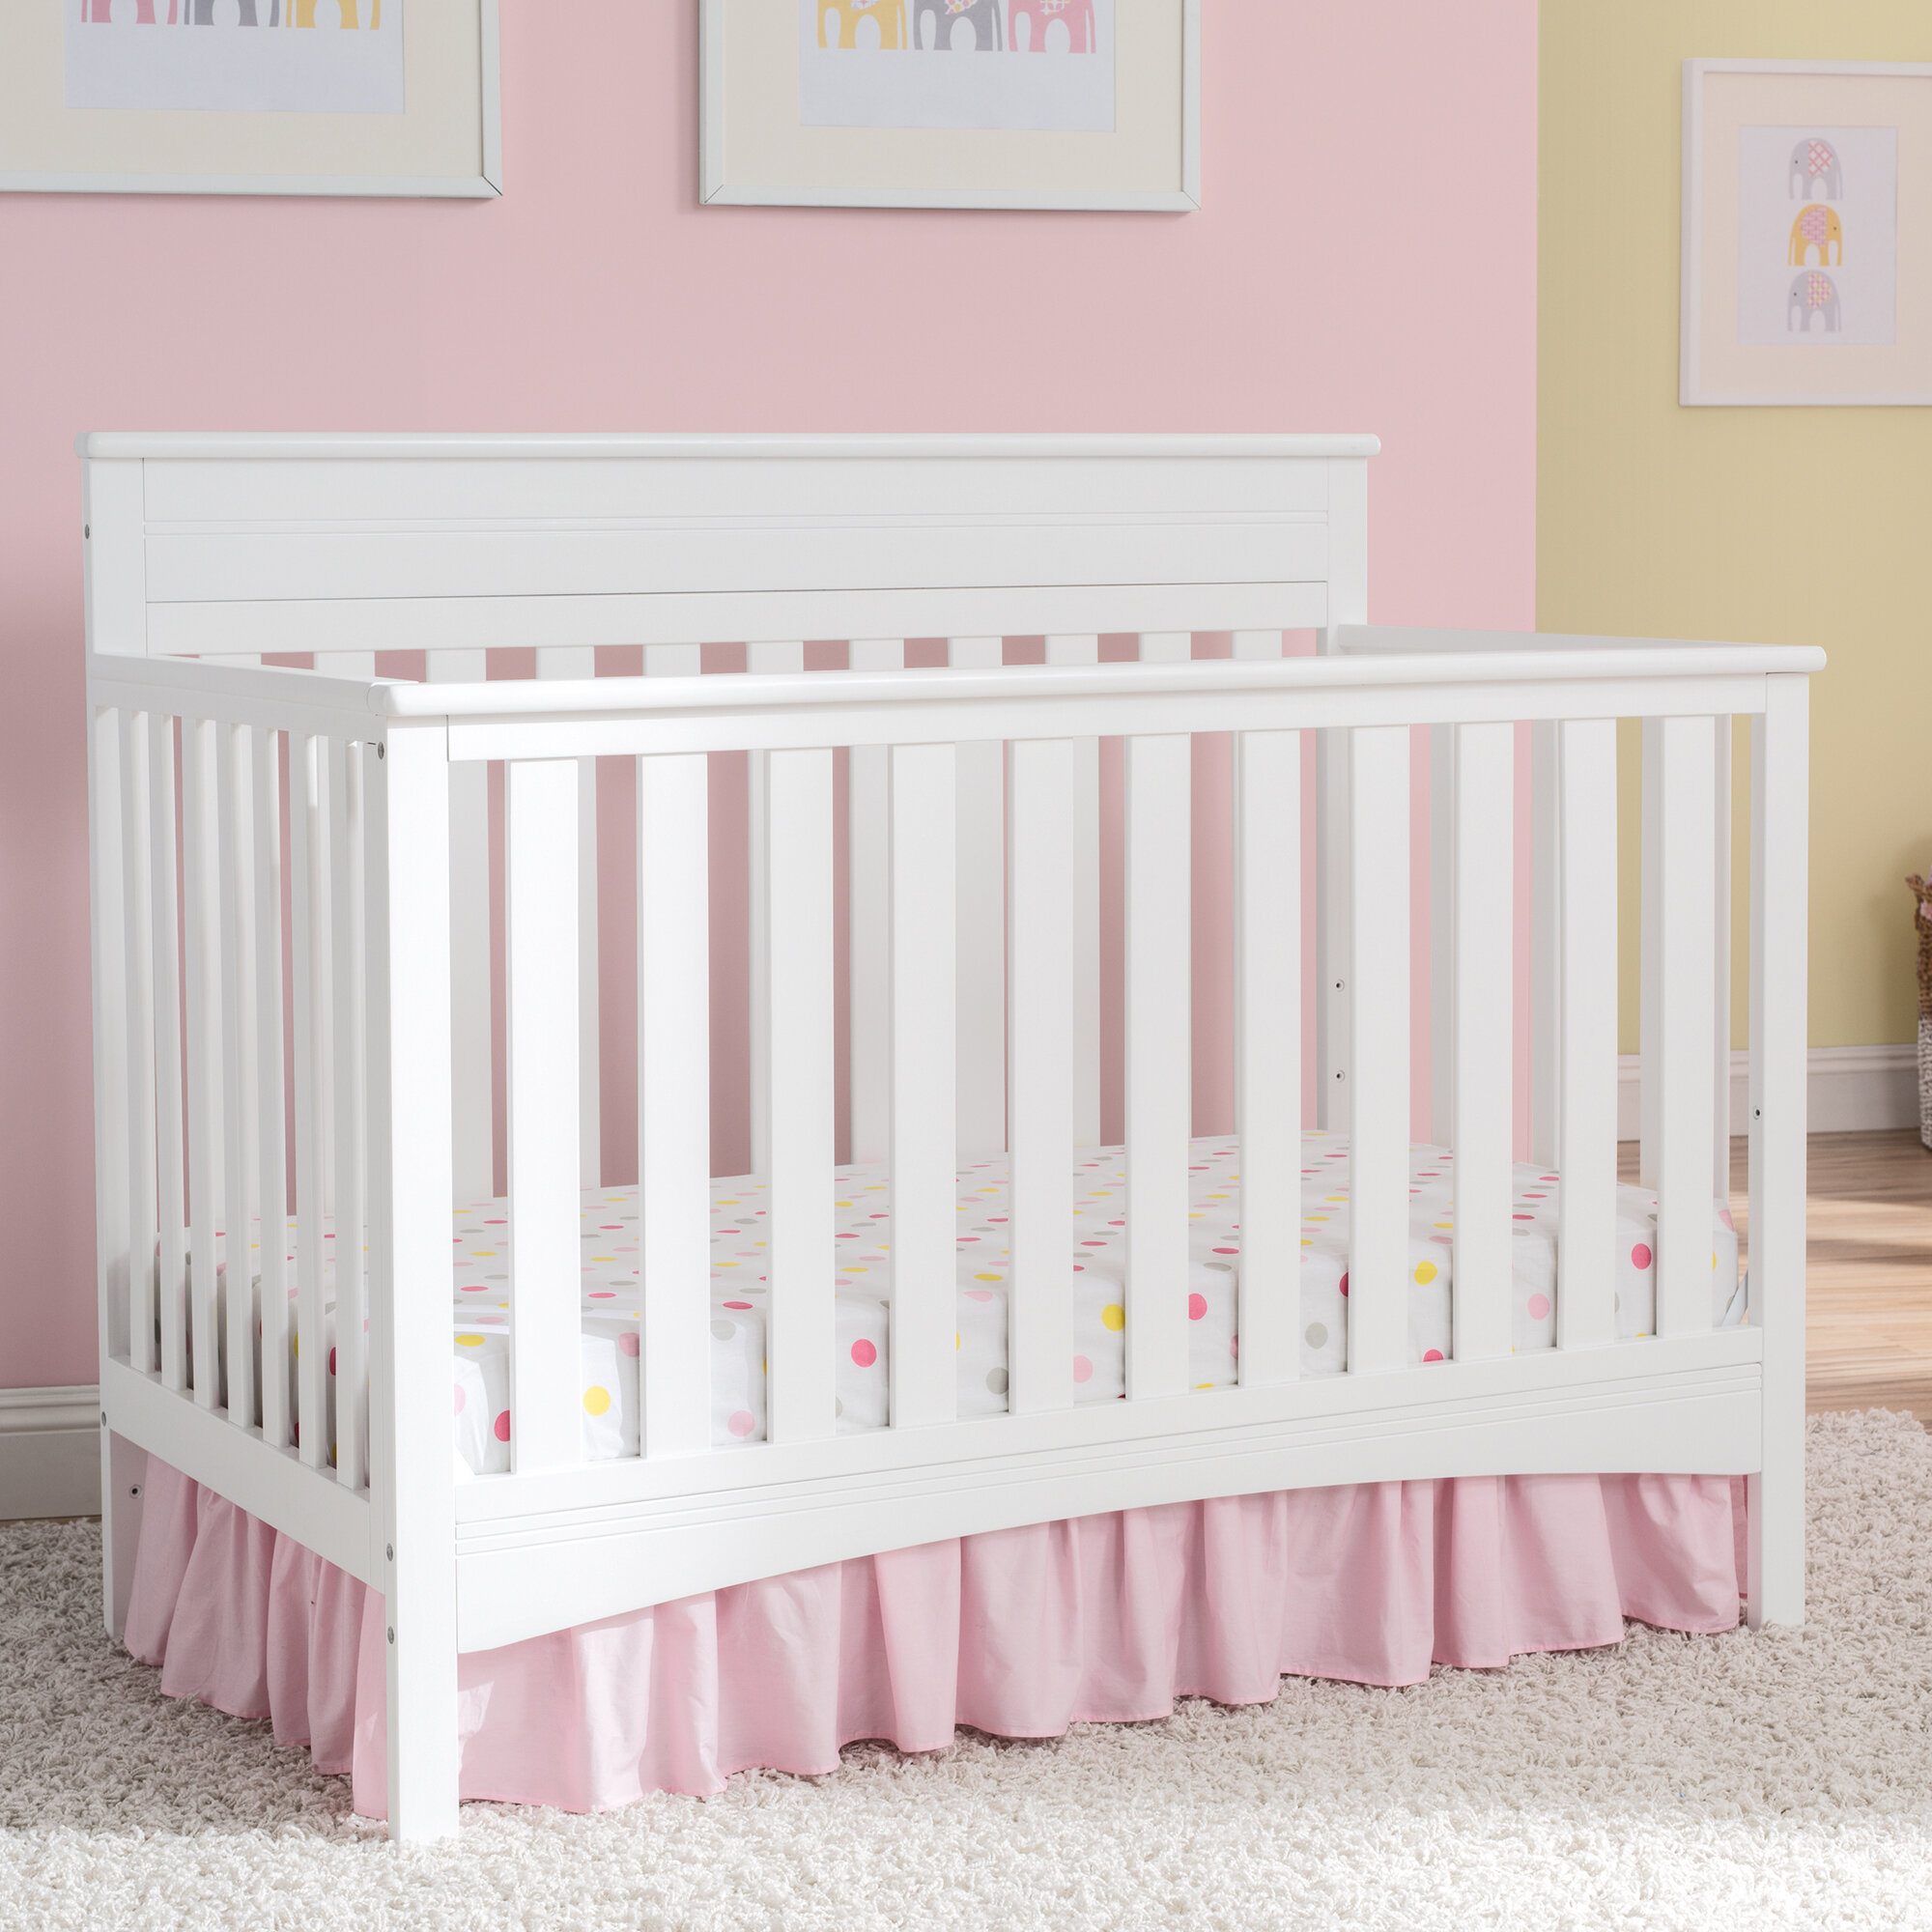 crib dp cribs see serta view baby com in convertible larger fremont amazon through